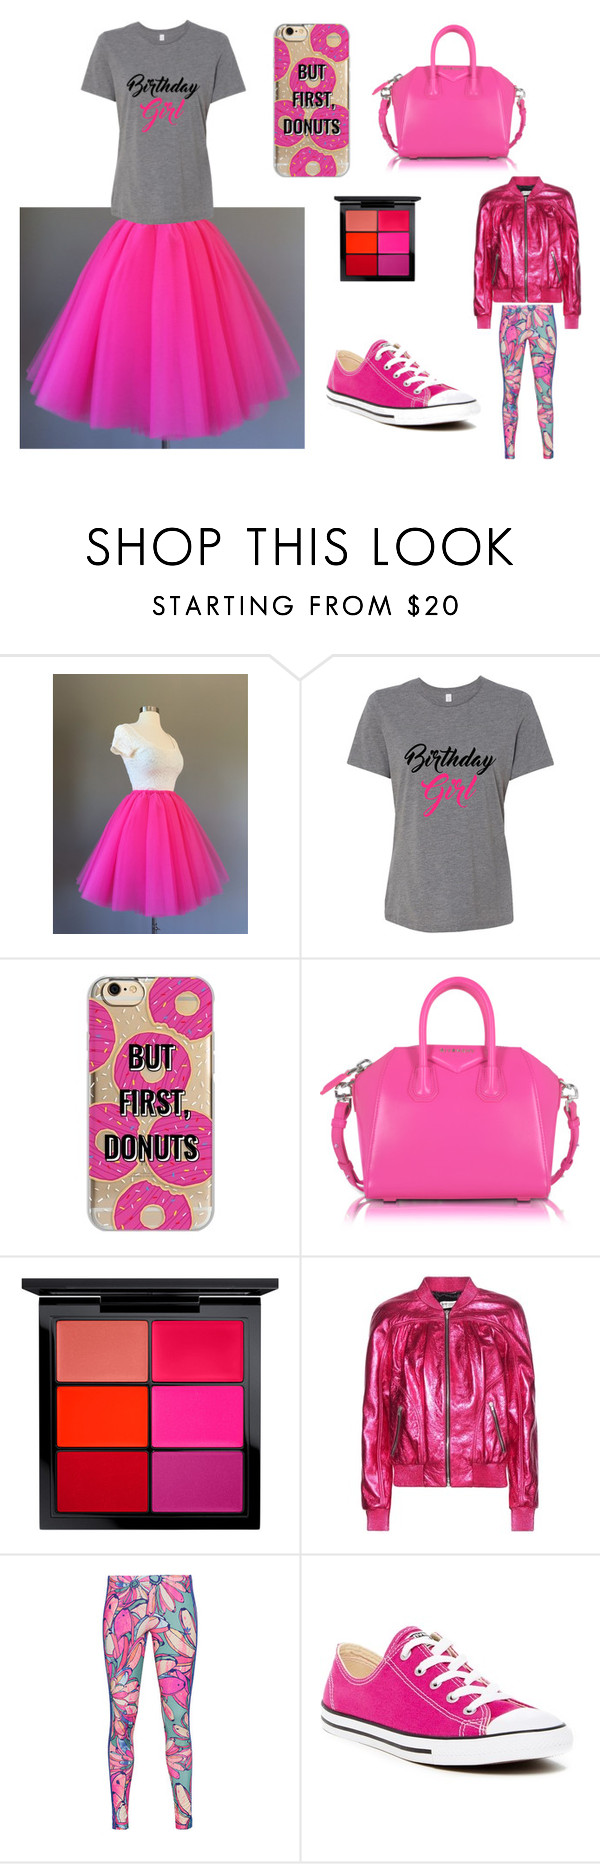 """Its My Birthday!!!!"" by mkauffman-1 ❤ liked on Polyvore featuring Agent 18, Givenchy, MAC Cosmetics, Yves Saint Laurent, adidas Originals, Converse and birthdayonelectiondaystinks"